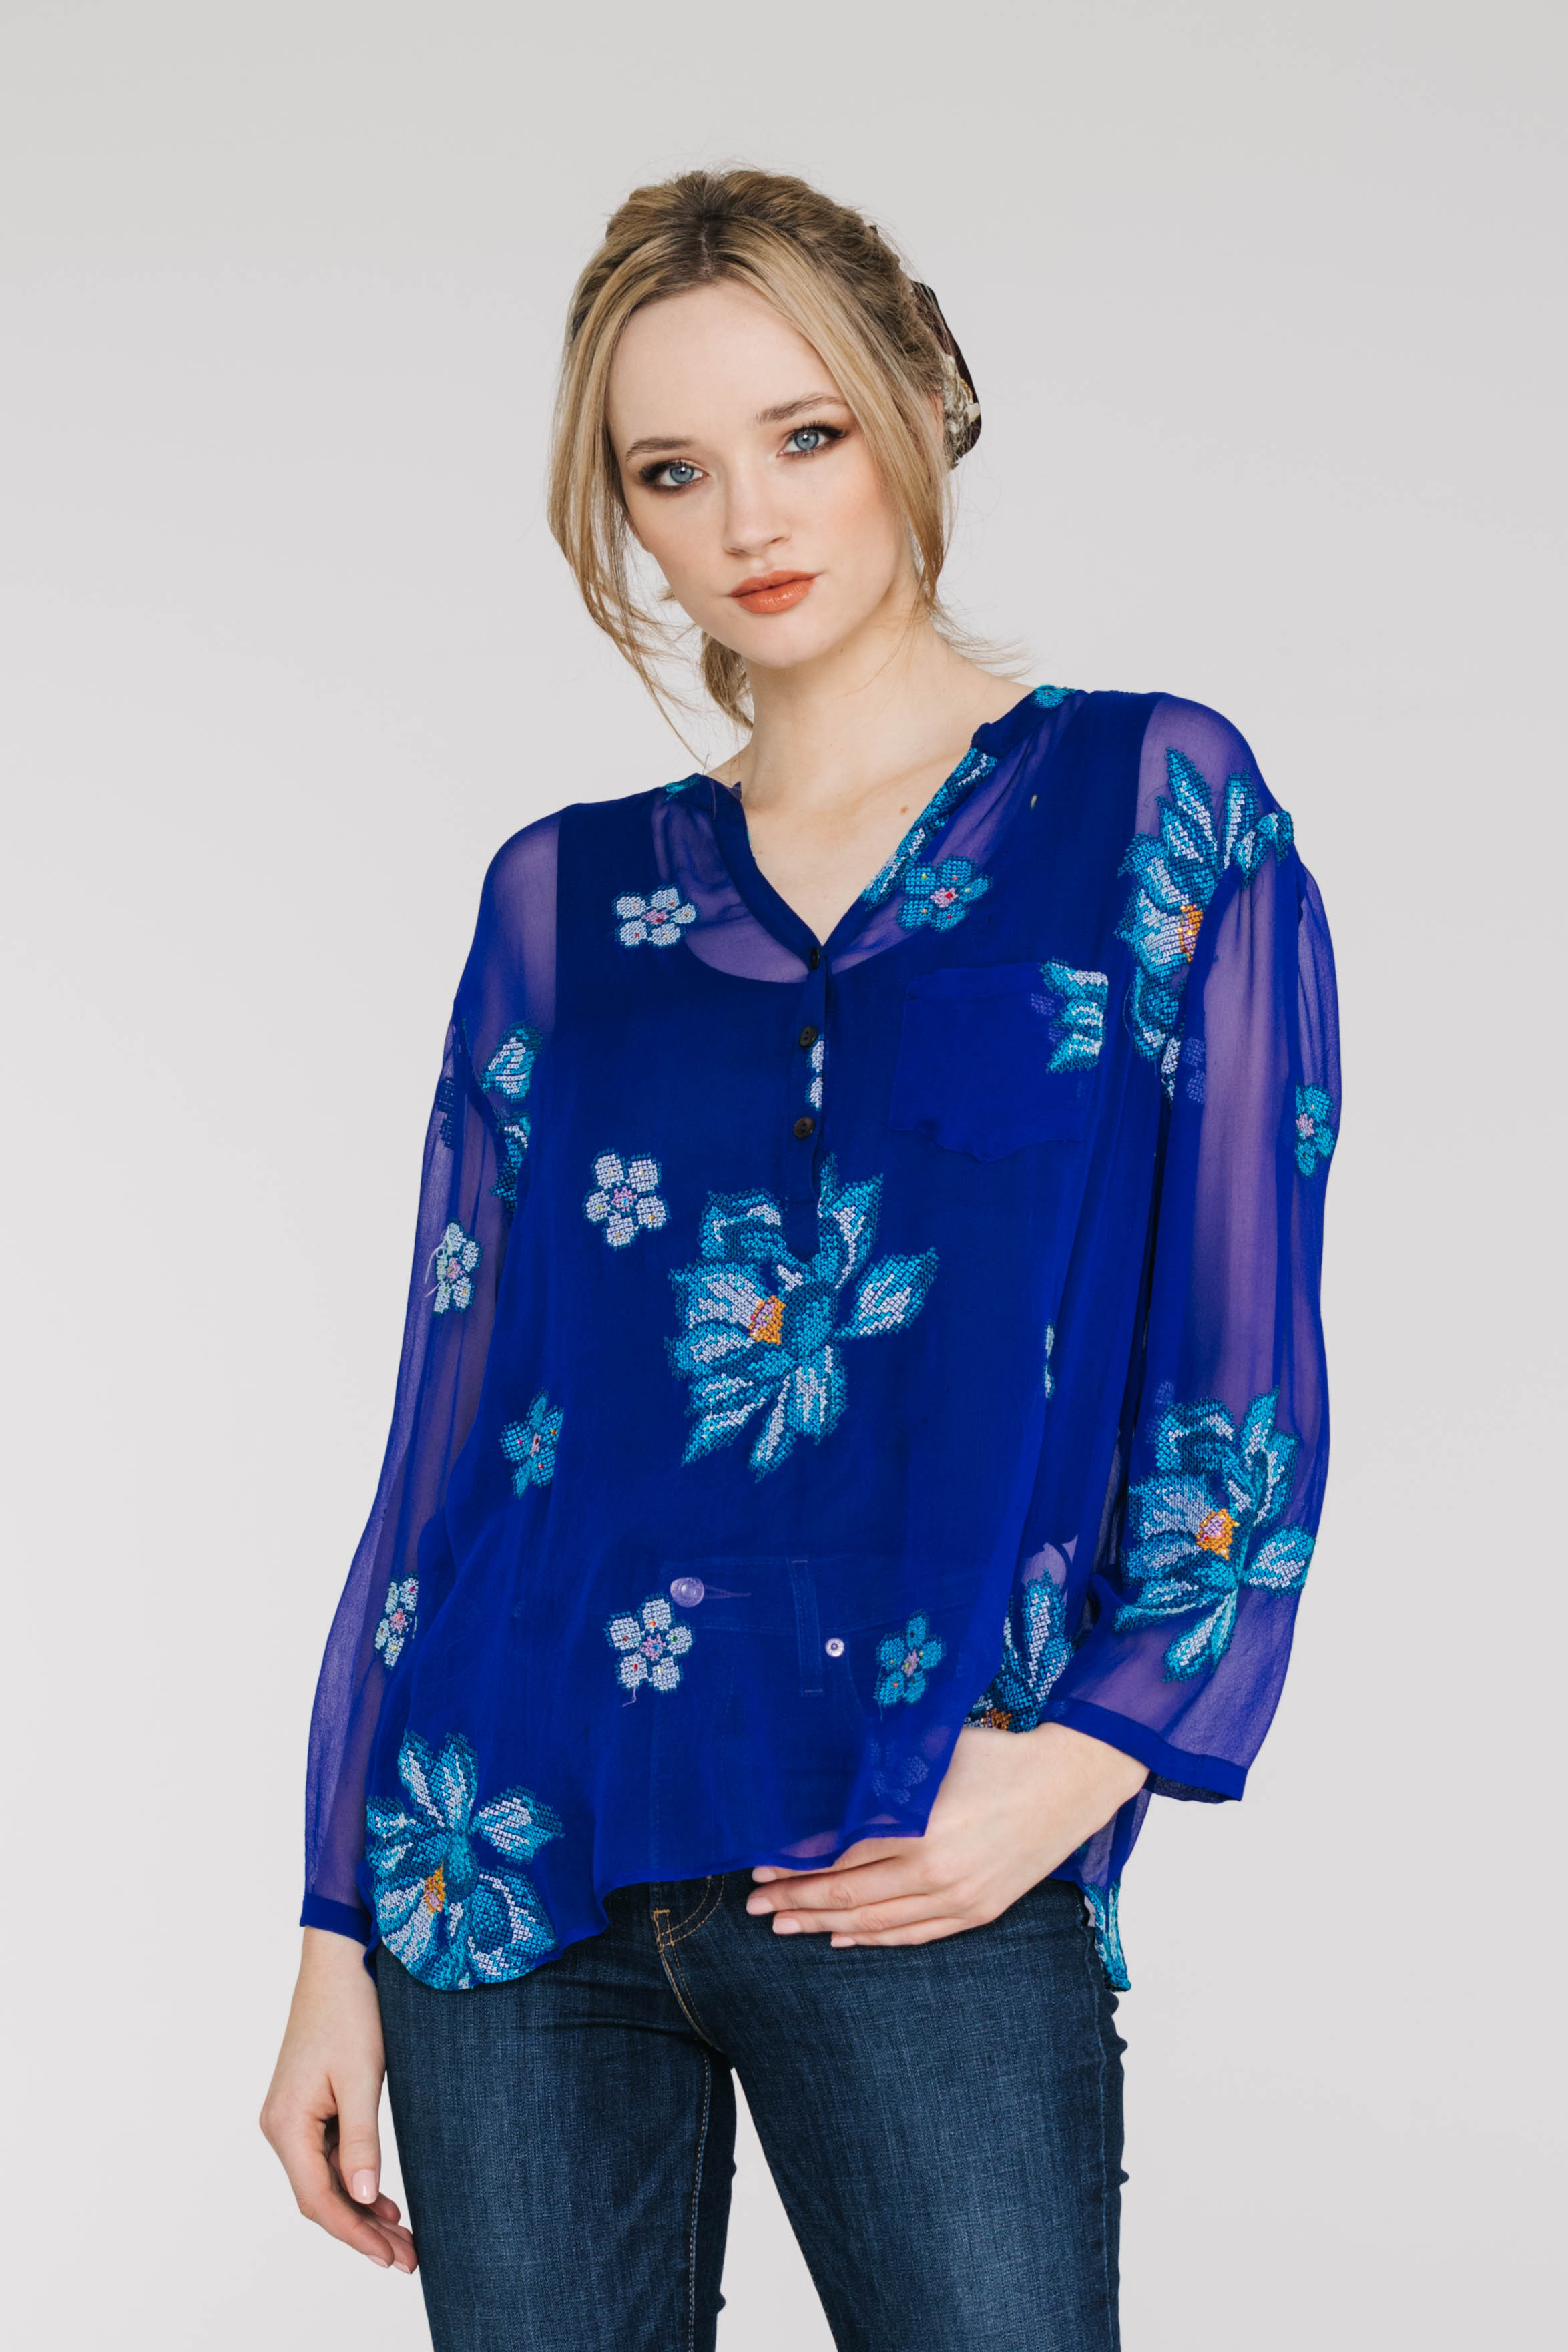 Starry Night Shirt 6473PA Starry Rose Blue